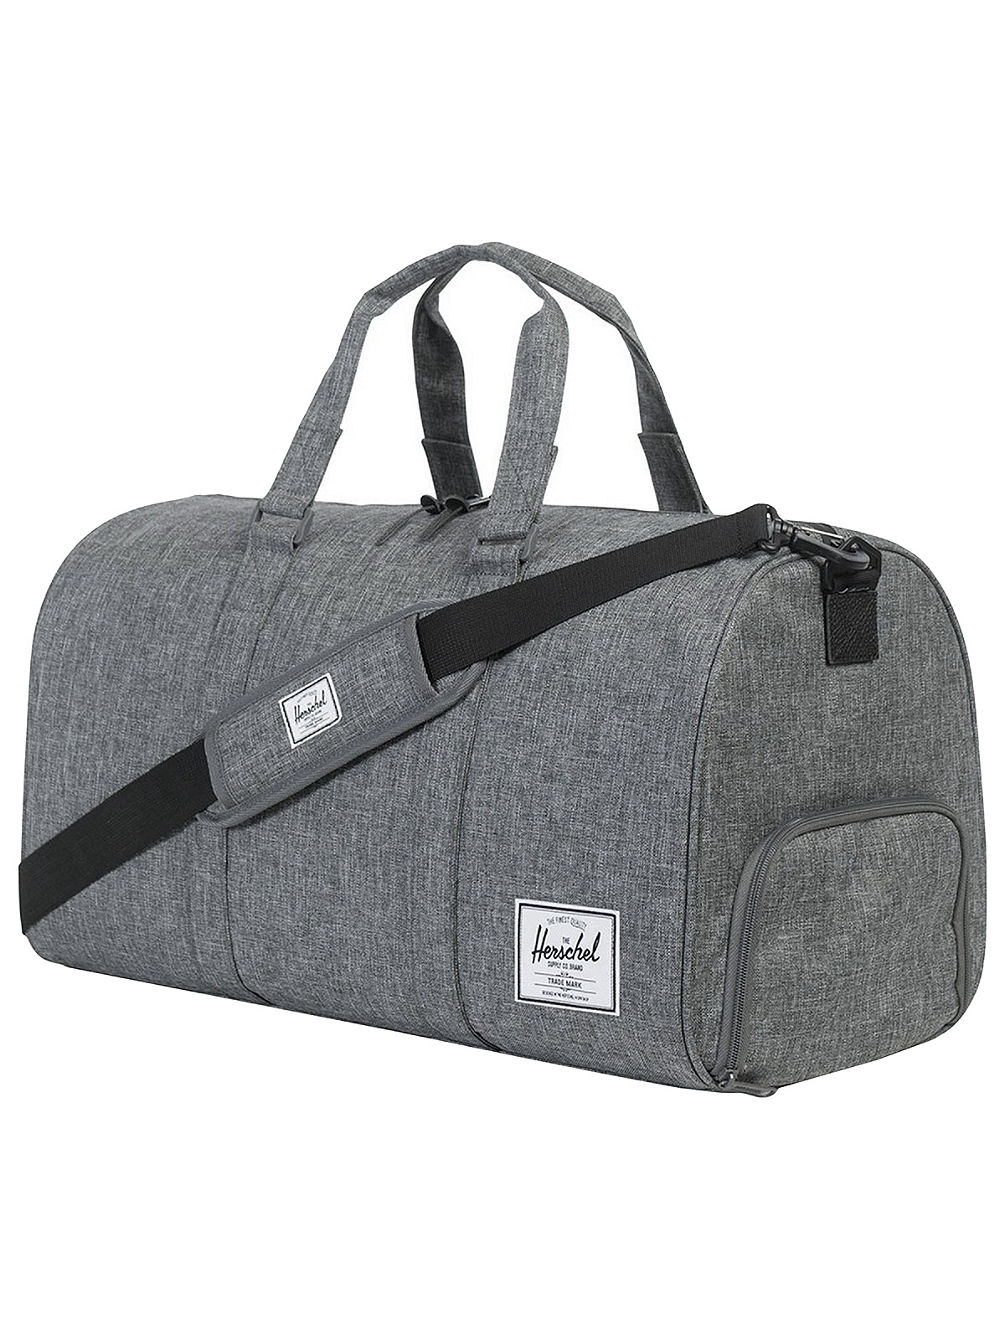 herschel-novel-travelbag